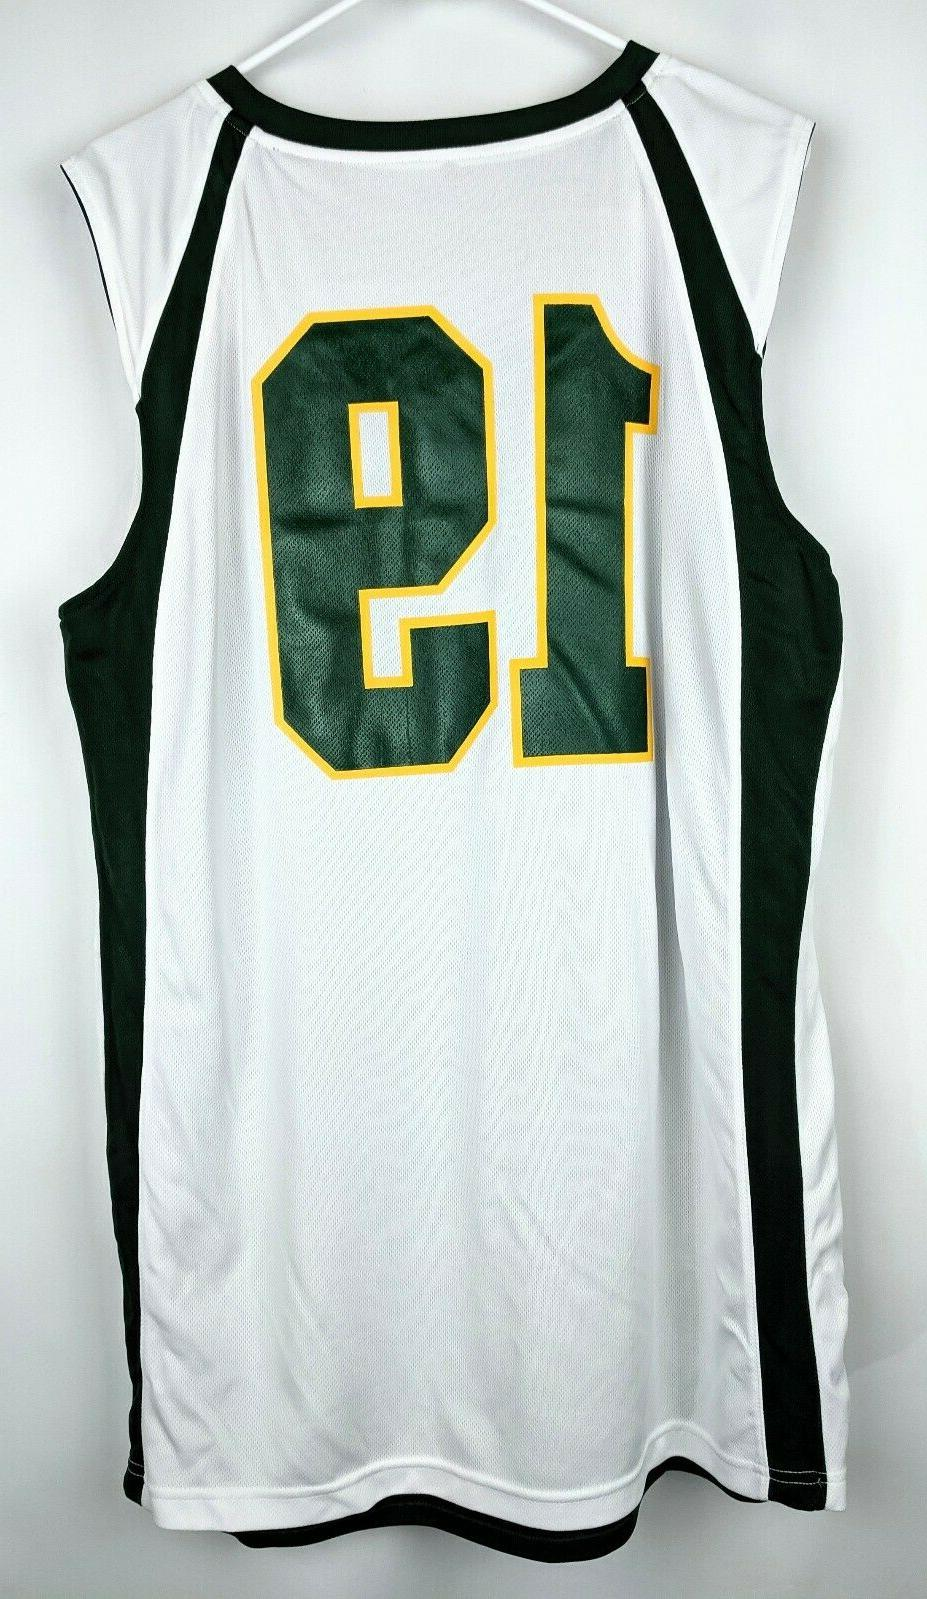 Alleson Reversible Basketball Jersey Large Throwback Green